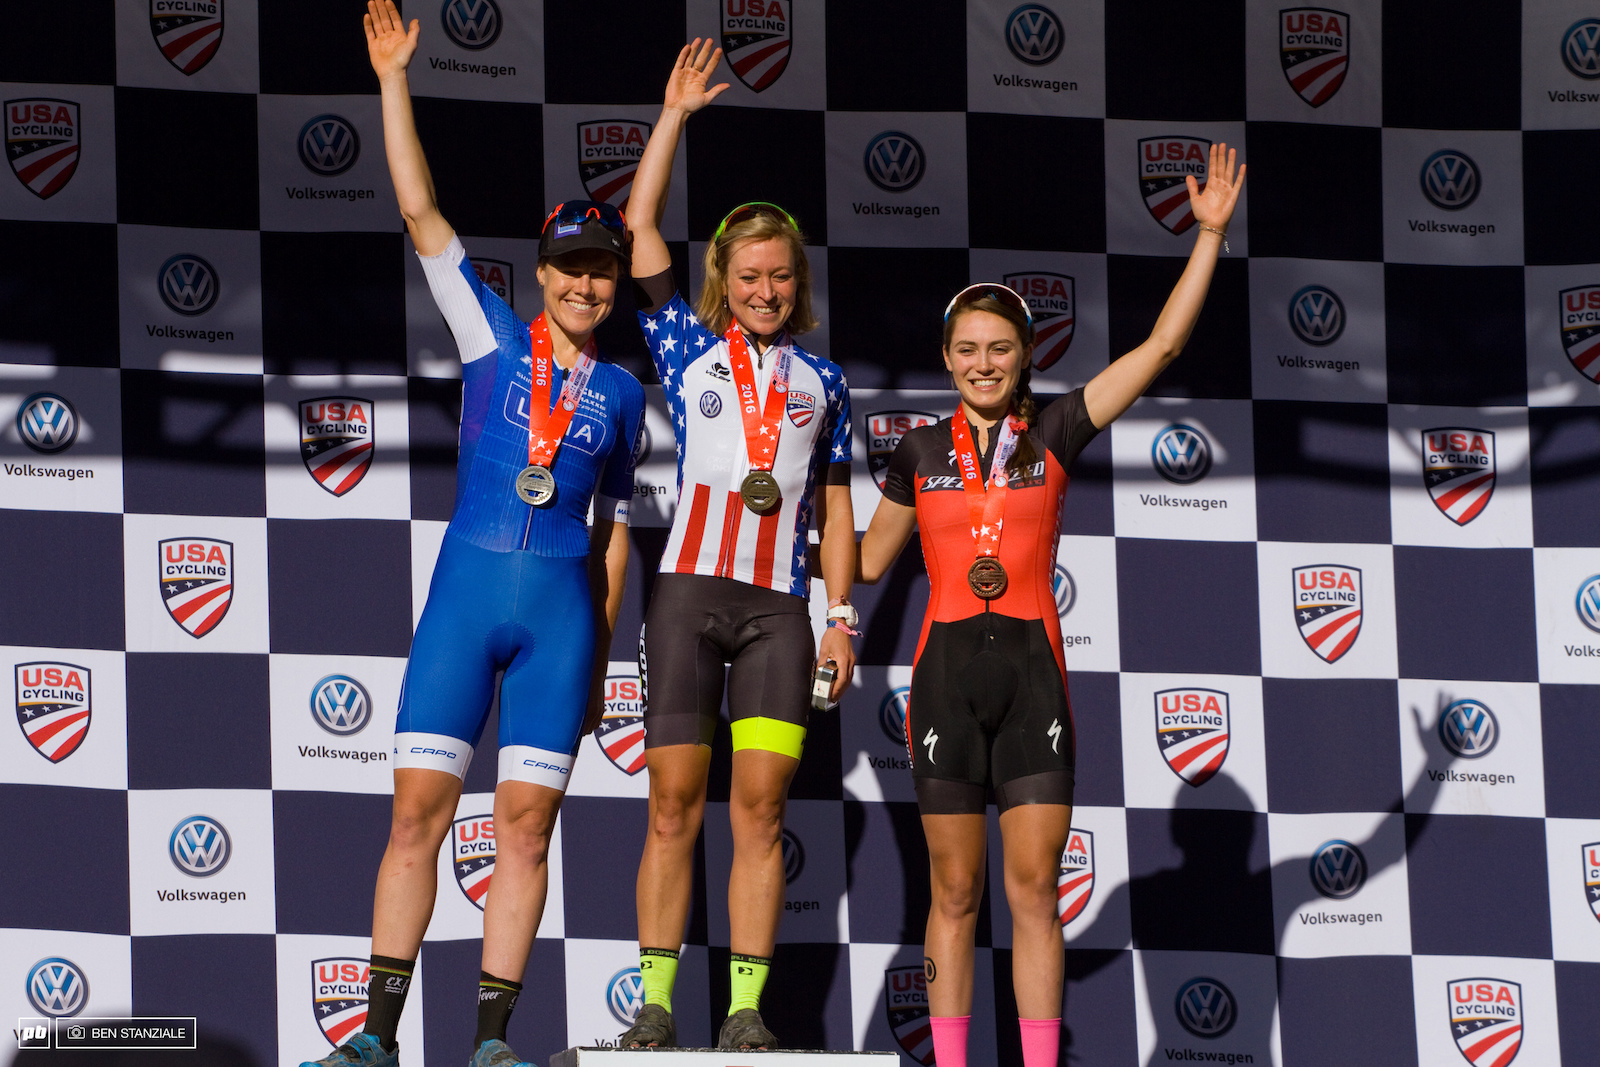 USA National Champion Pro Women Short Track XC Podium 1st- Erin Huck. 2nd- Georgia Gould. 3rd- Kate Courtney.